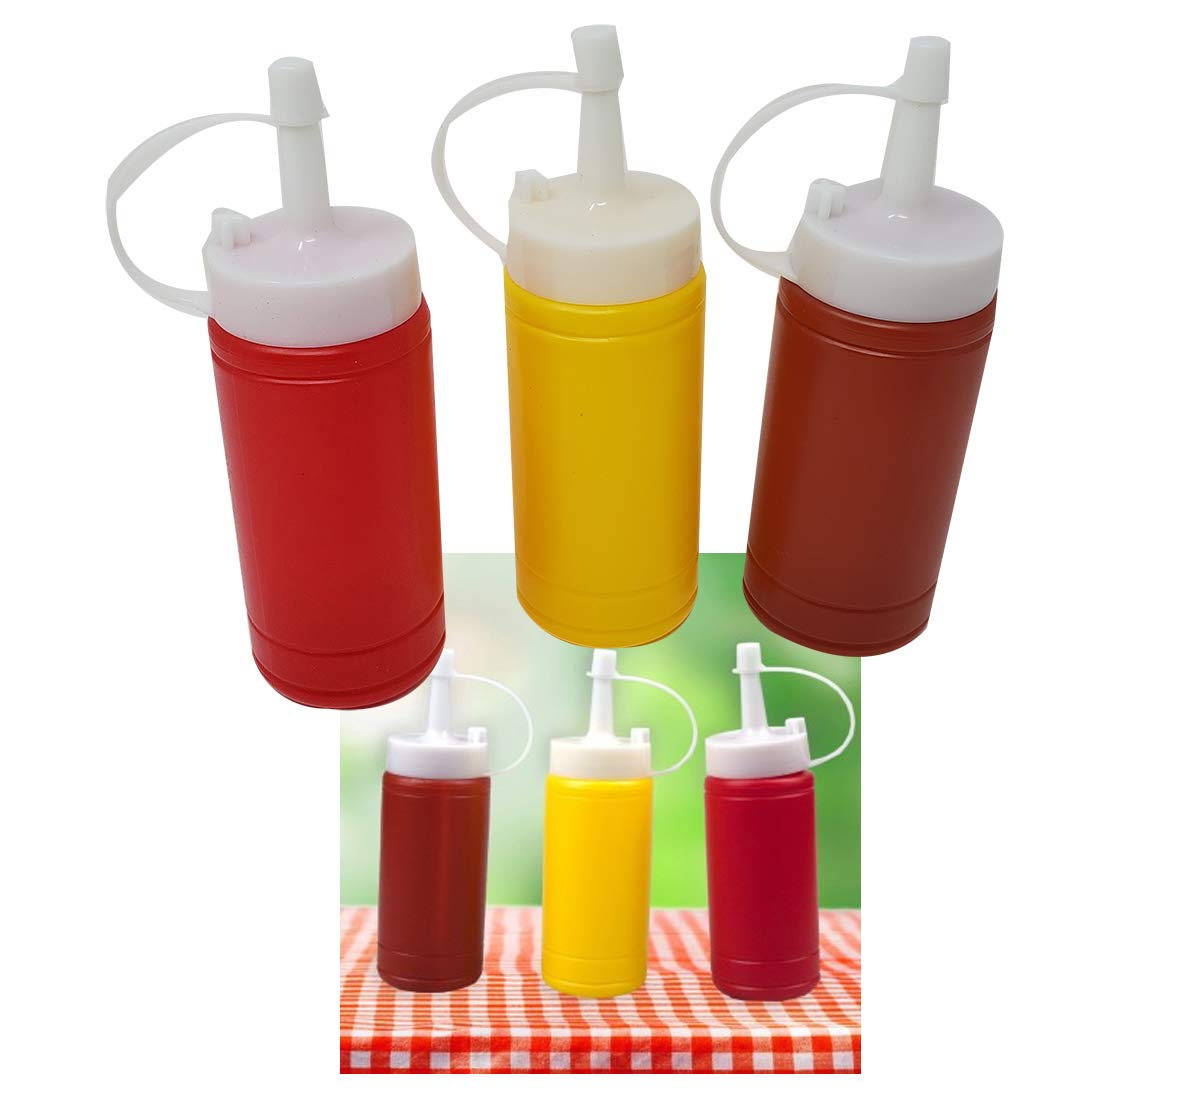 Mini Condiment Dispenser Set Ketchup, Mustard & BBQ sauce (12 bottles) squeeze bottles 6 Oz. by aaco (Image #4)